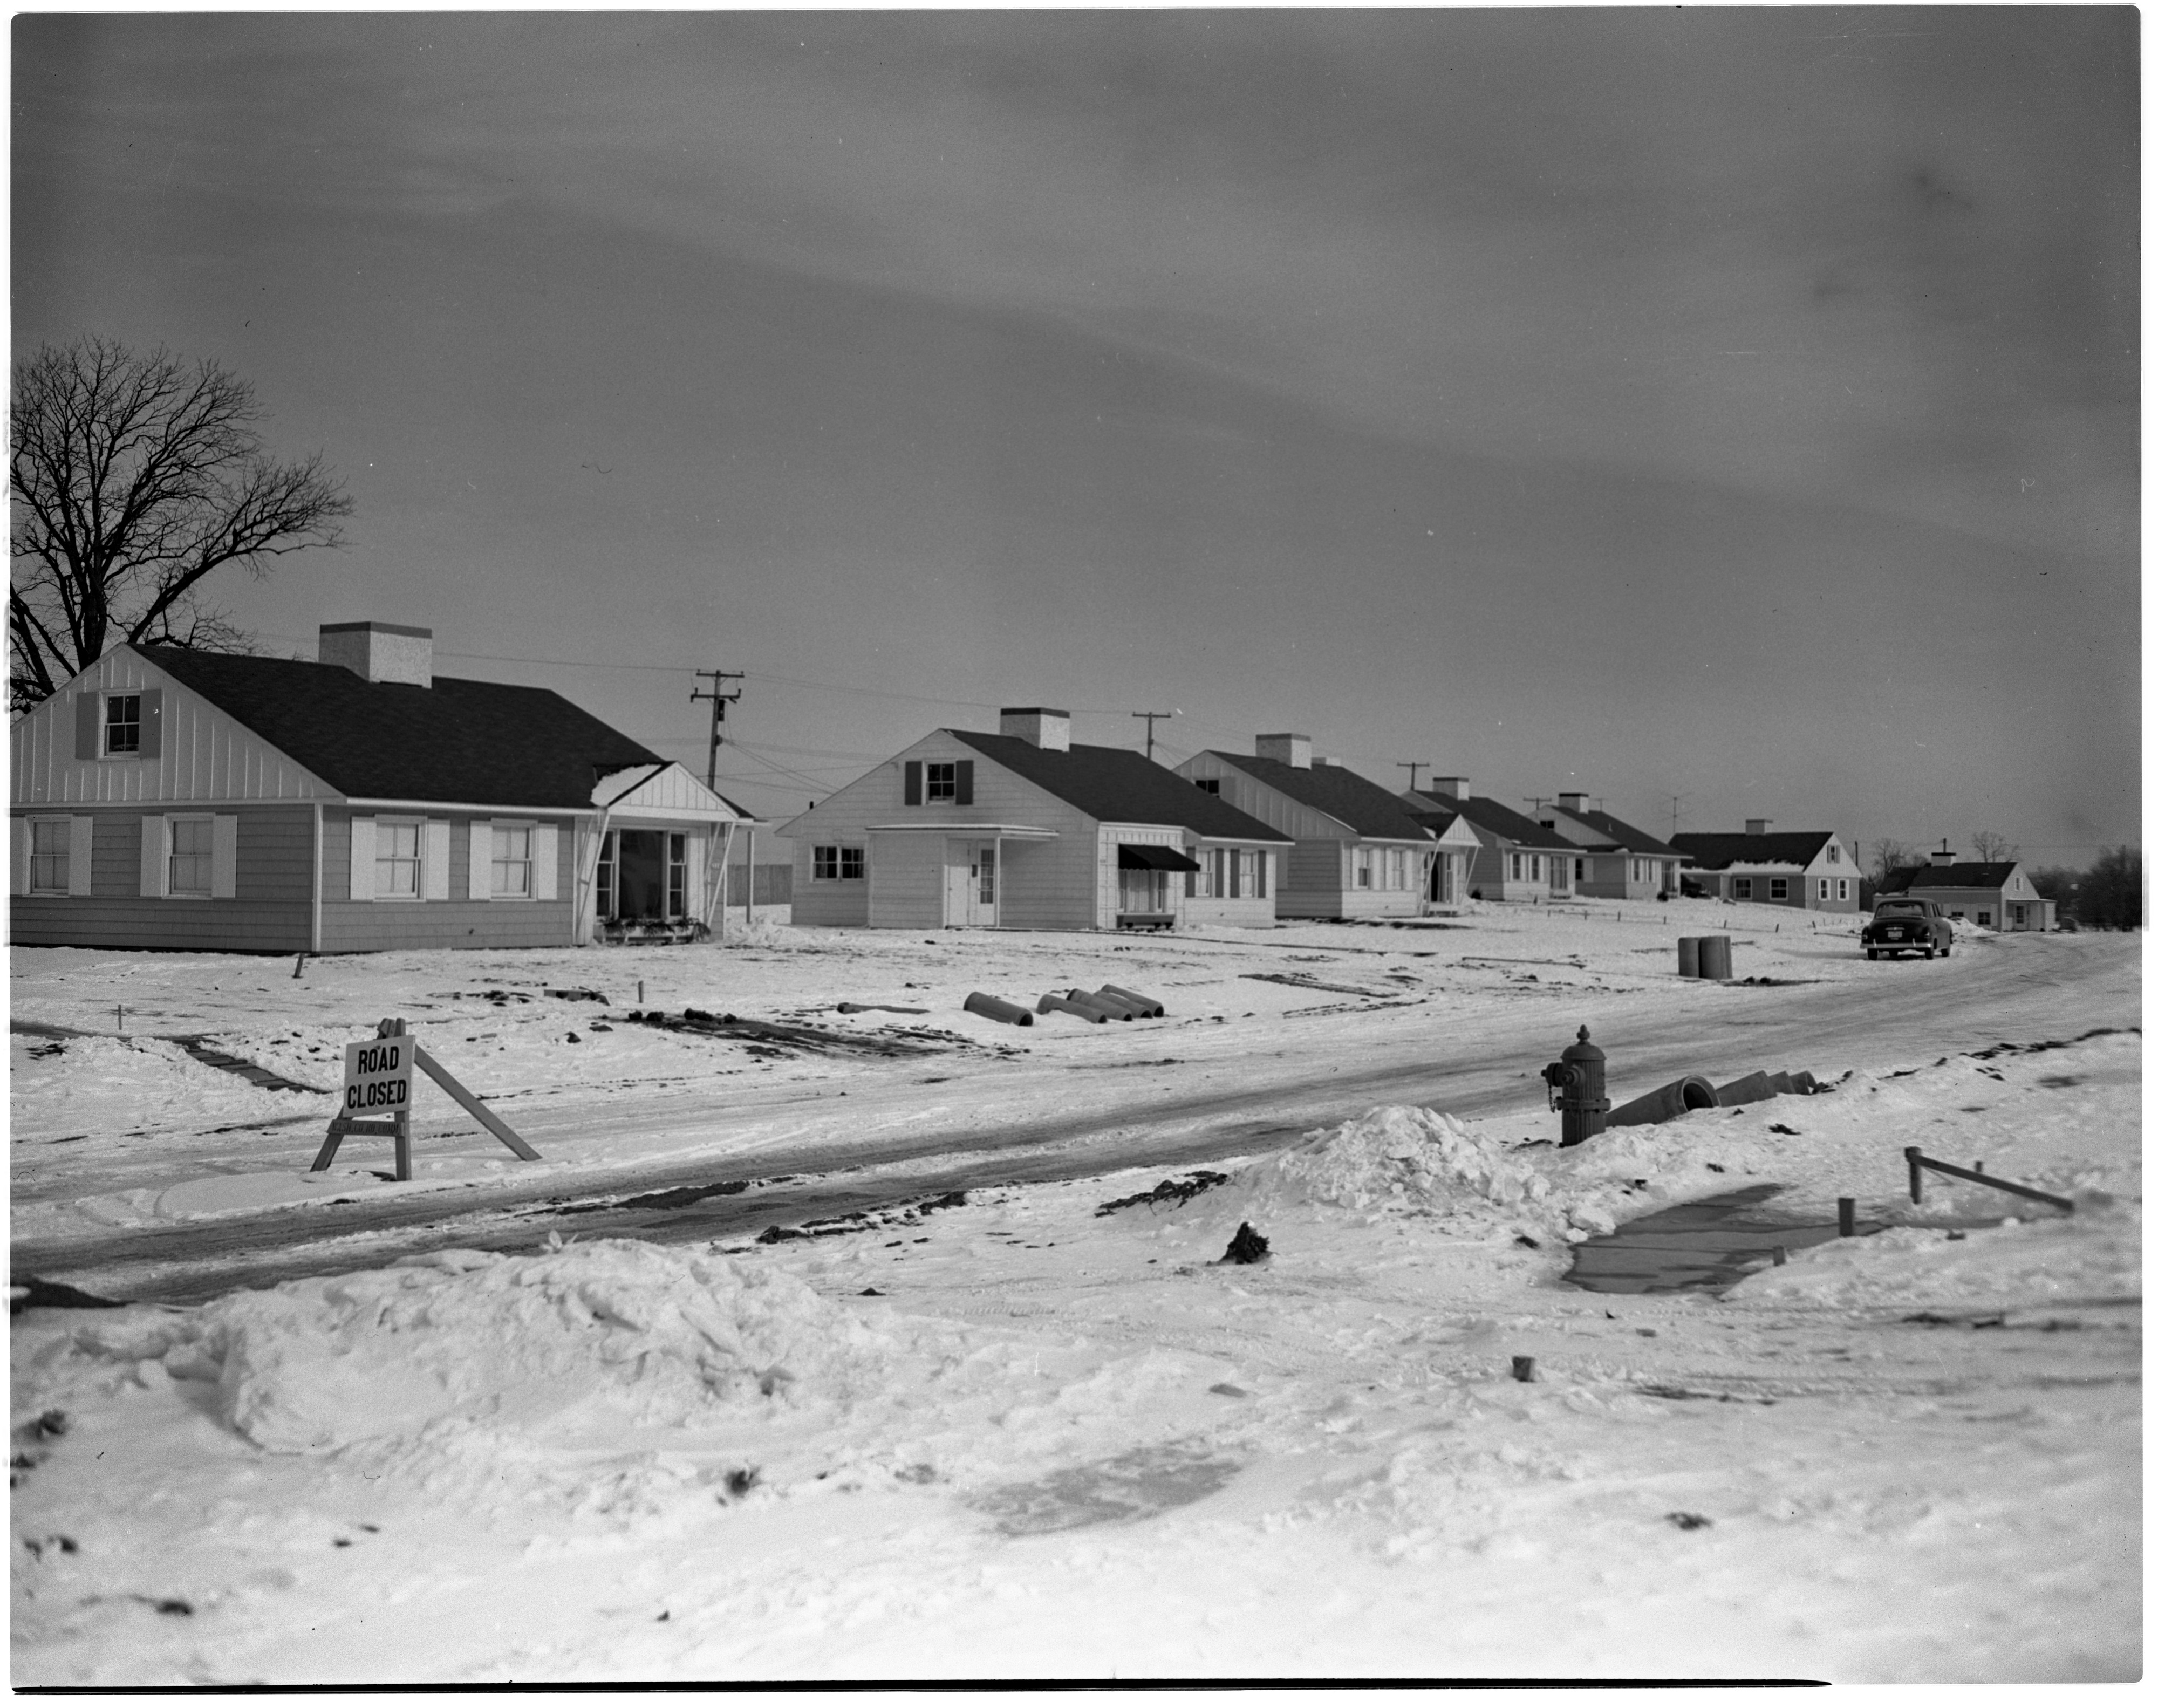 View of Pittsfield Park, New Street in Pittsfield Village, December 1950 image